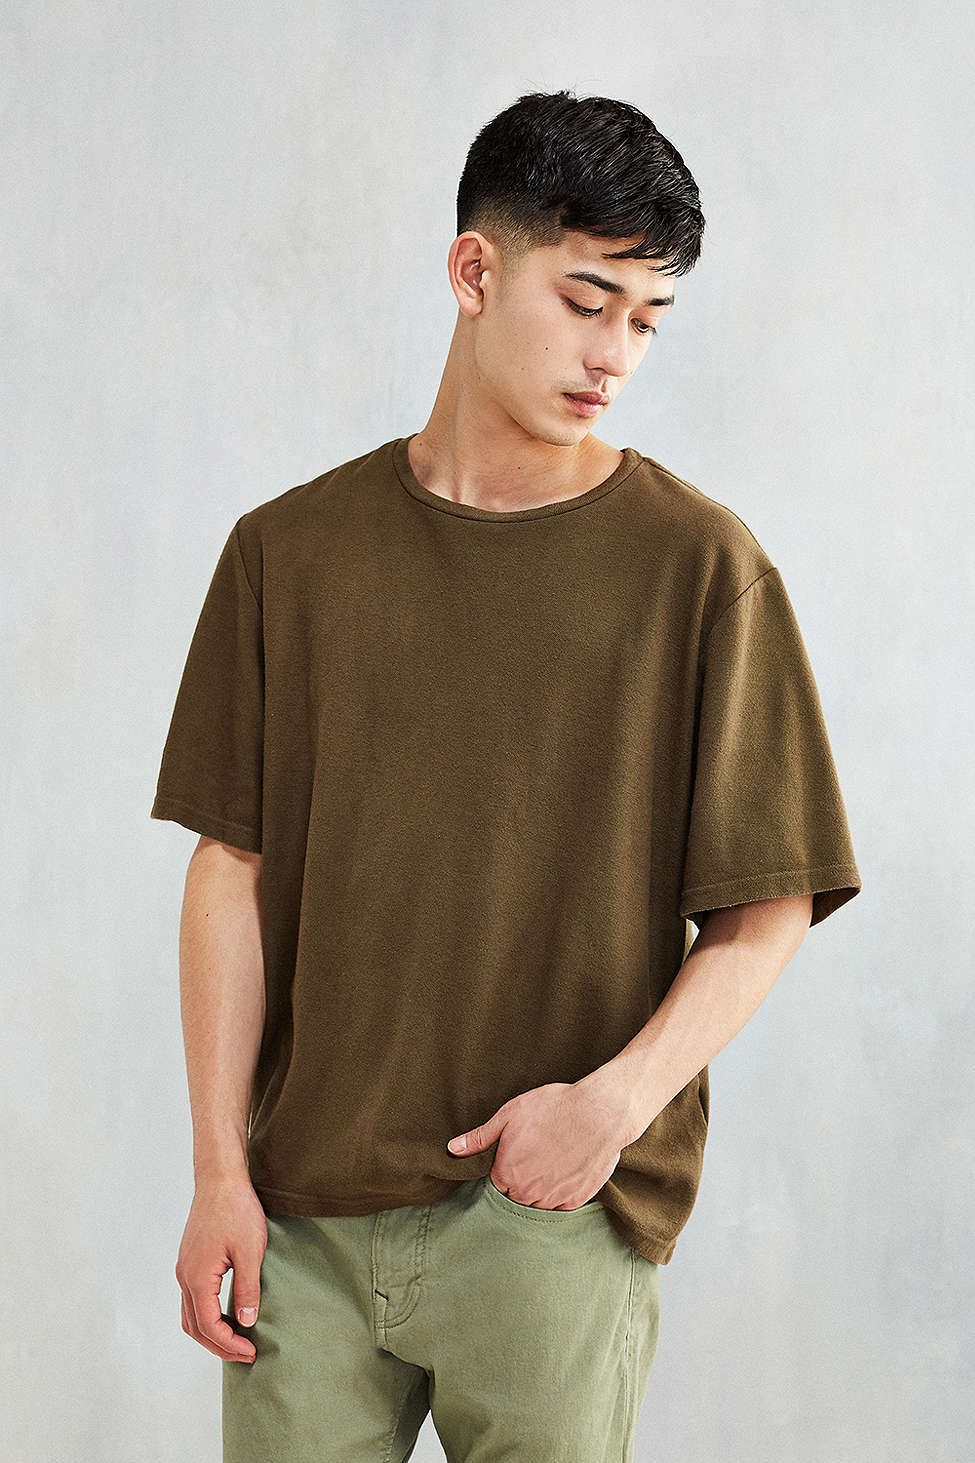 29 Ways To Makeover A Boxy Men's T-Shirt. Transform a boring T-shirt into a look you'll want to wear out on the town! Oversized Cropped Tank. Via oraplanrans.tk 5. Dolman Sleeve Top.